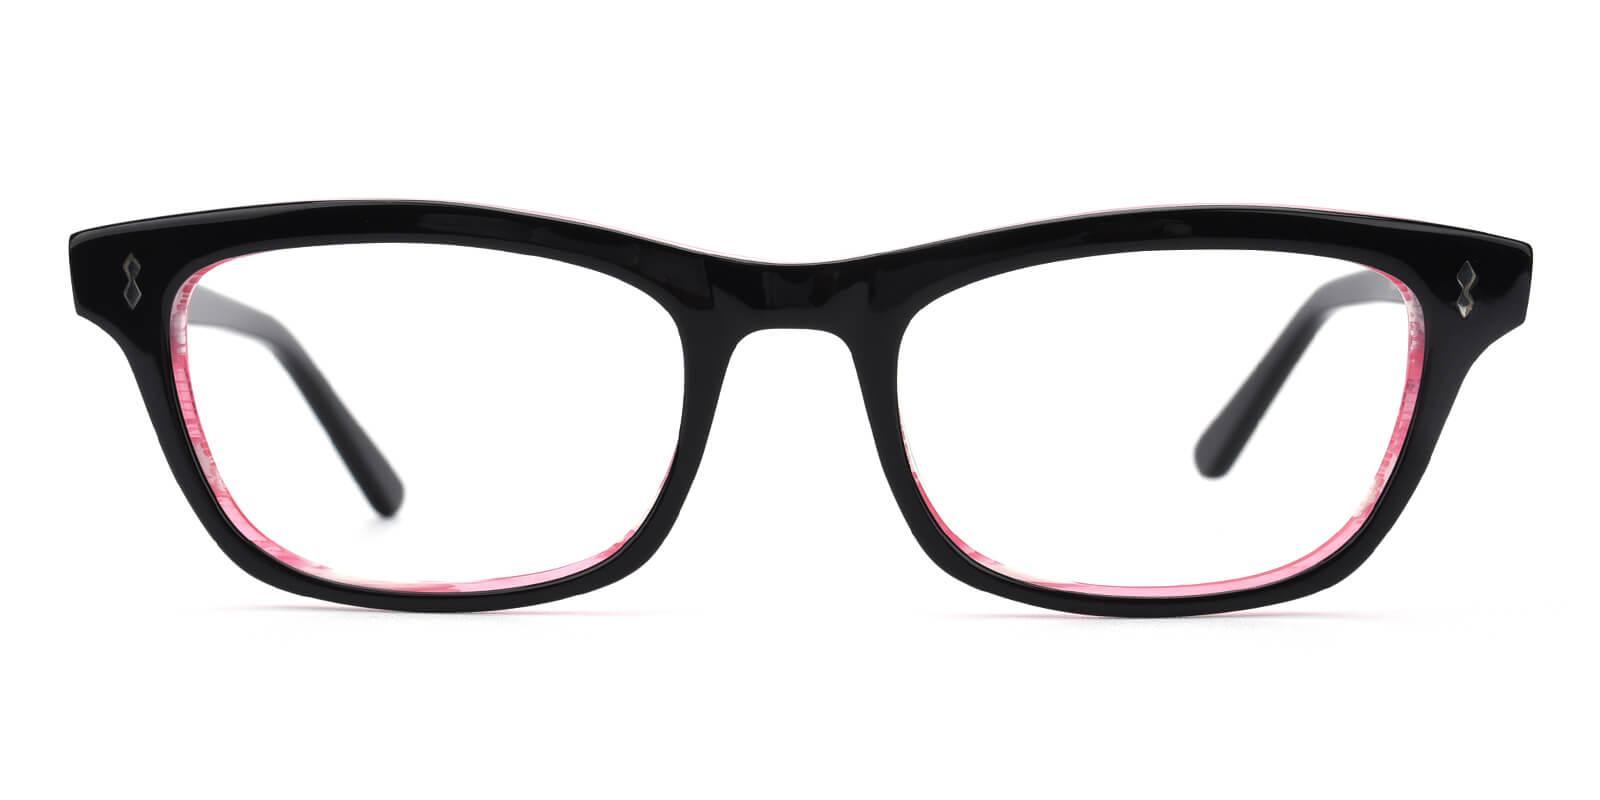 Leavary-Pink-Rectangle-Acetate-Eyeglasses-detail